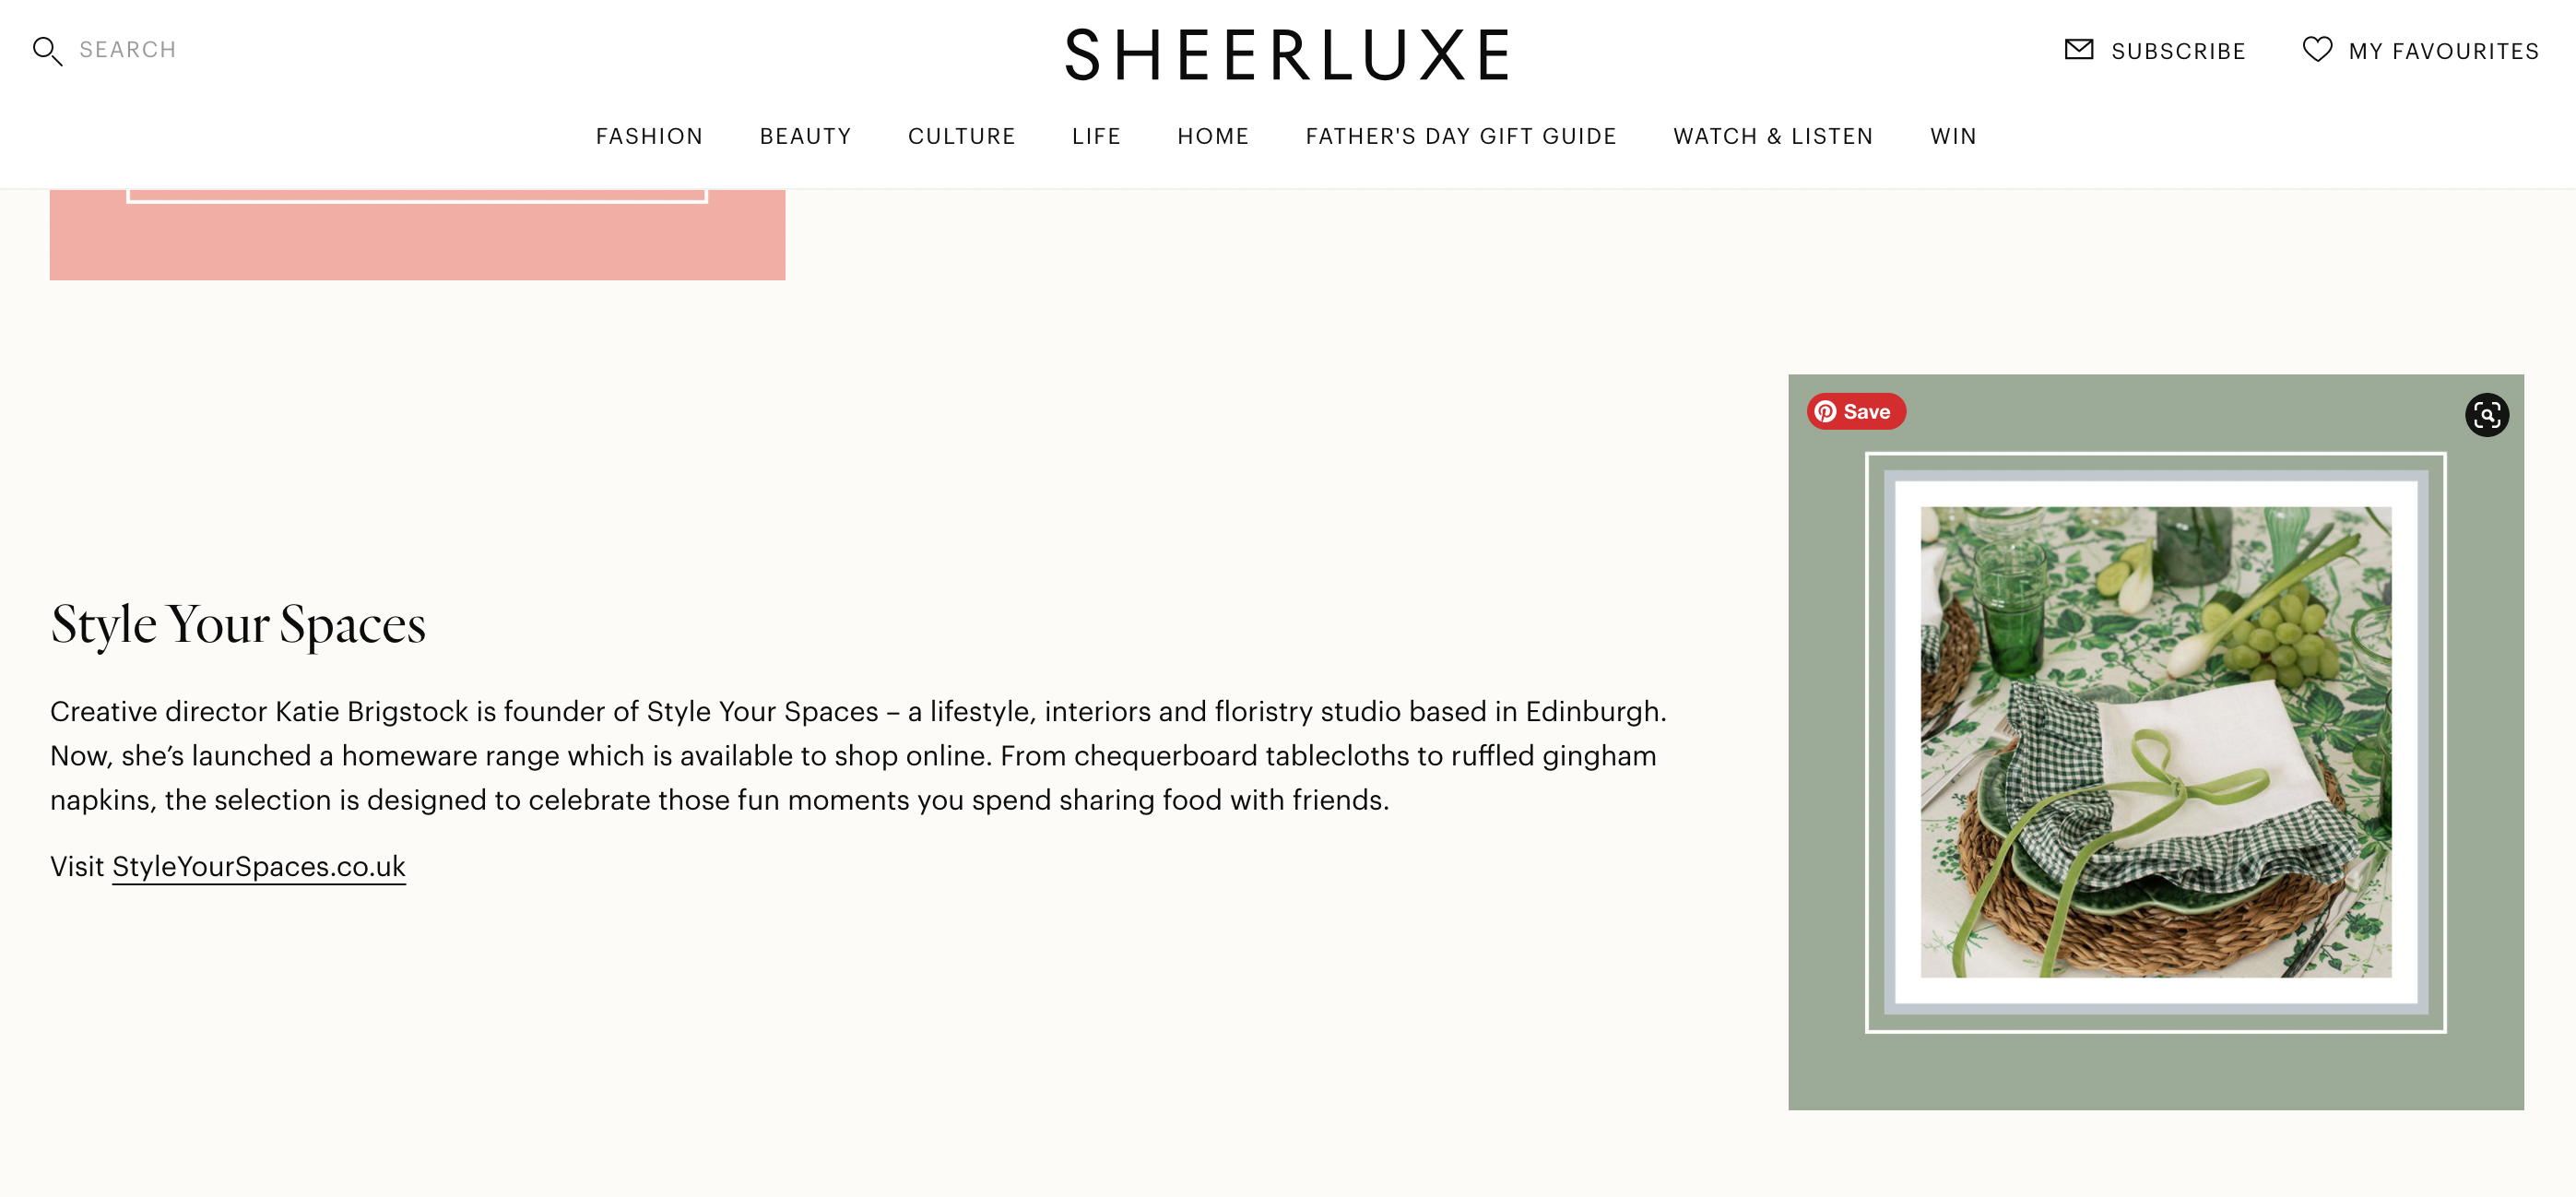 SHEERLUXE - 'What's New In Interiors This Month'